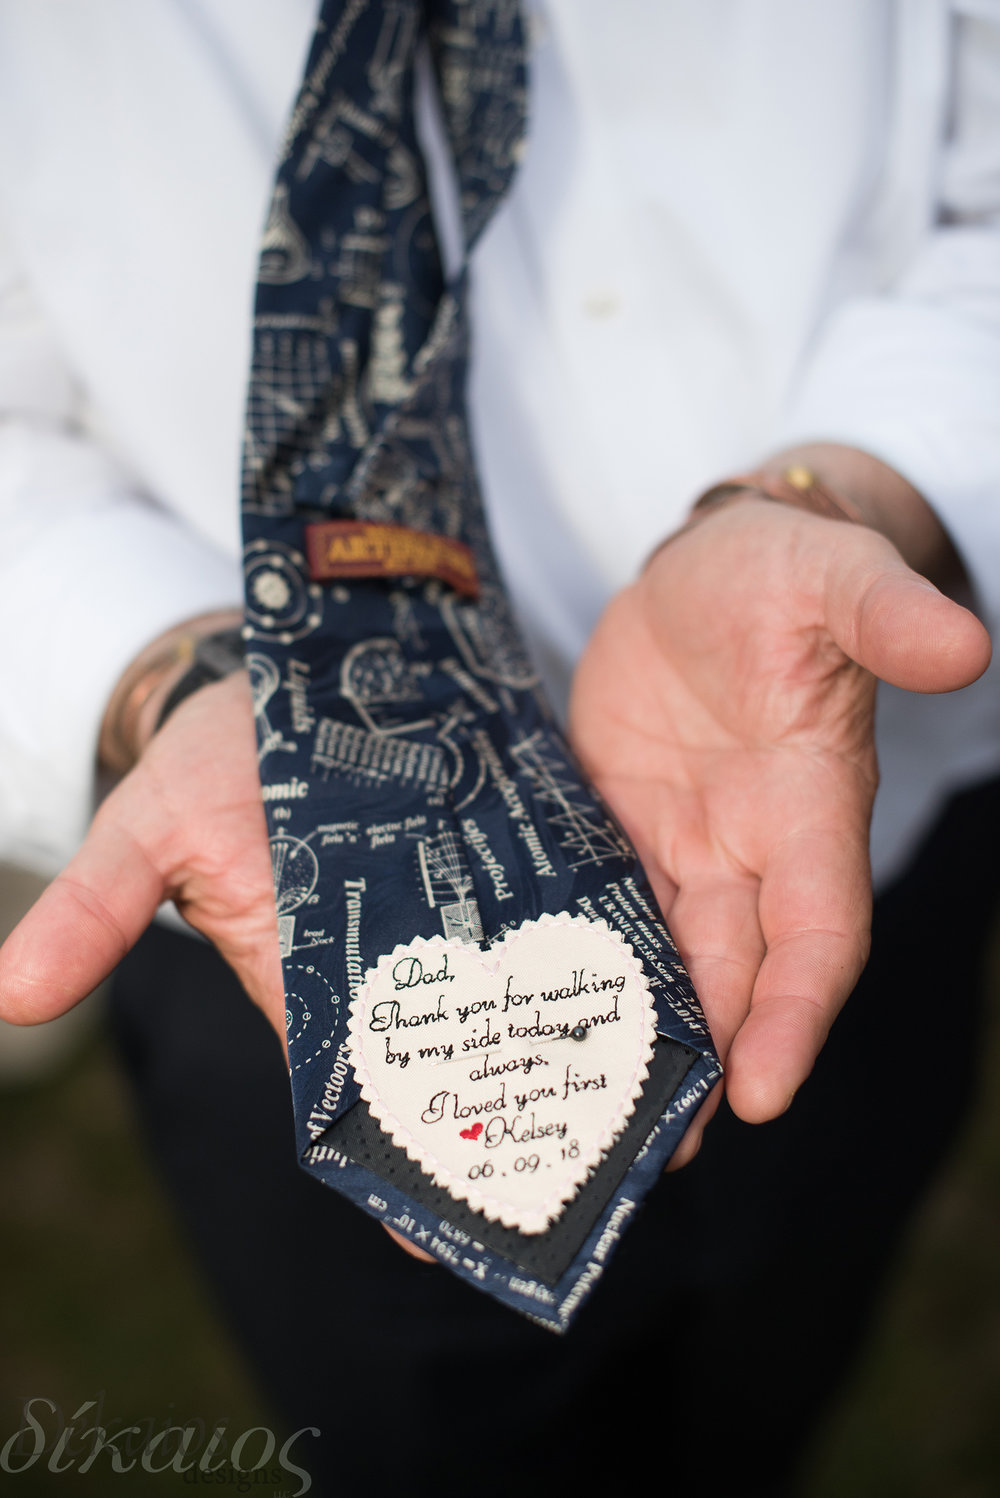 Dad's tie had a sweet message from Kelsey